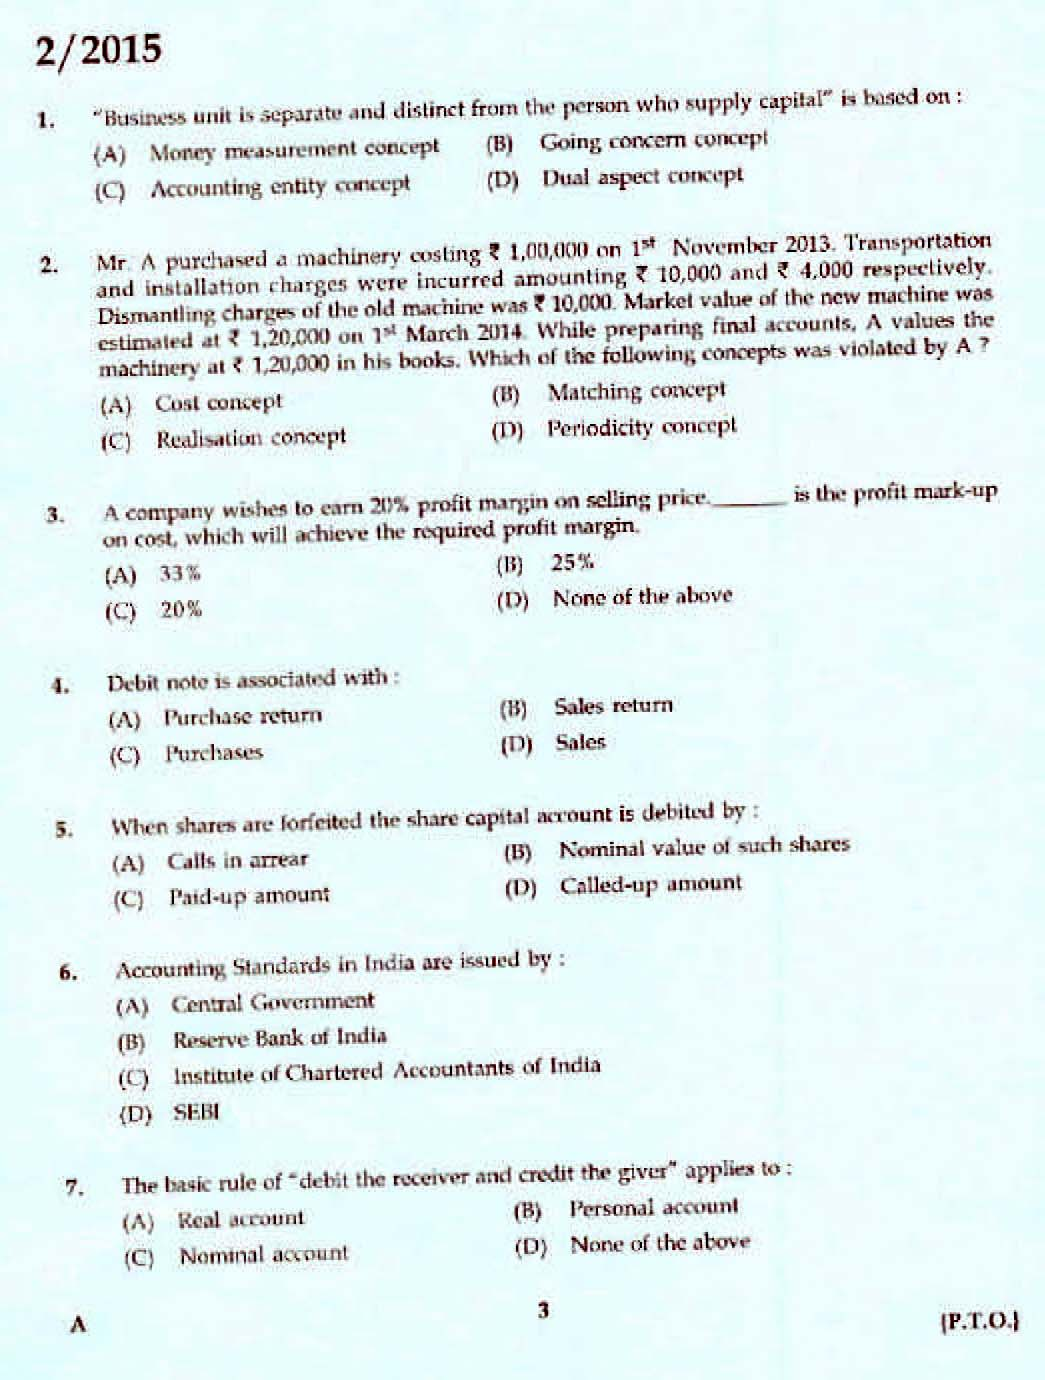 Kerala PSC Accounts Officer OMR Exam 2015 Question Paper